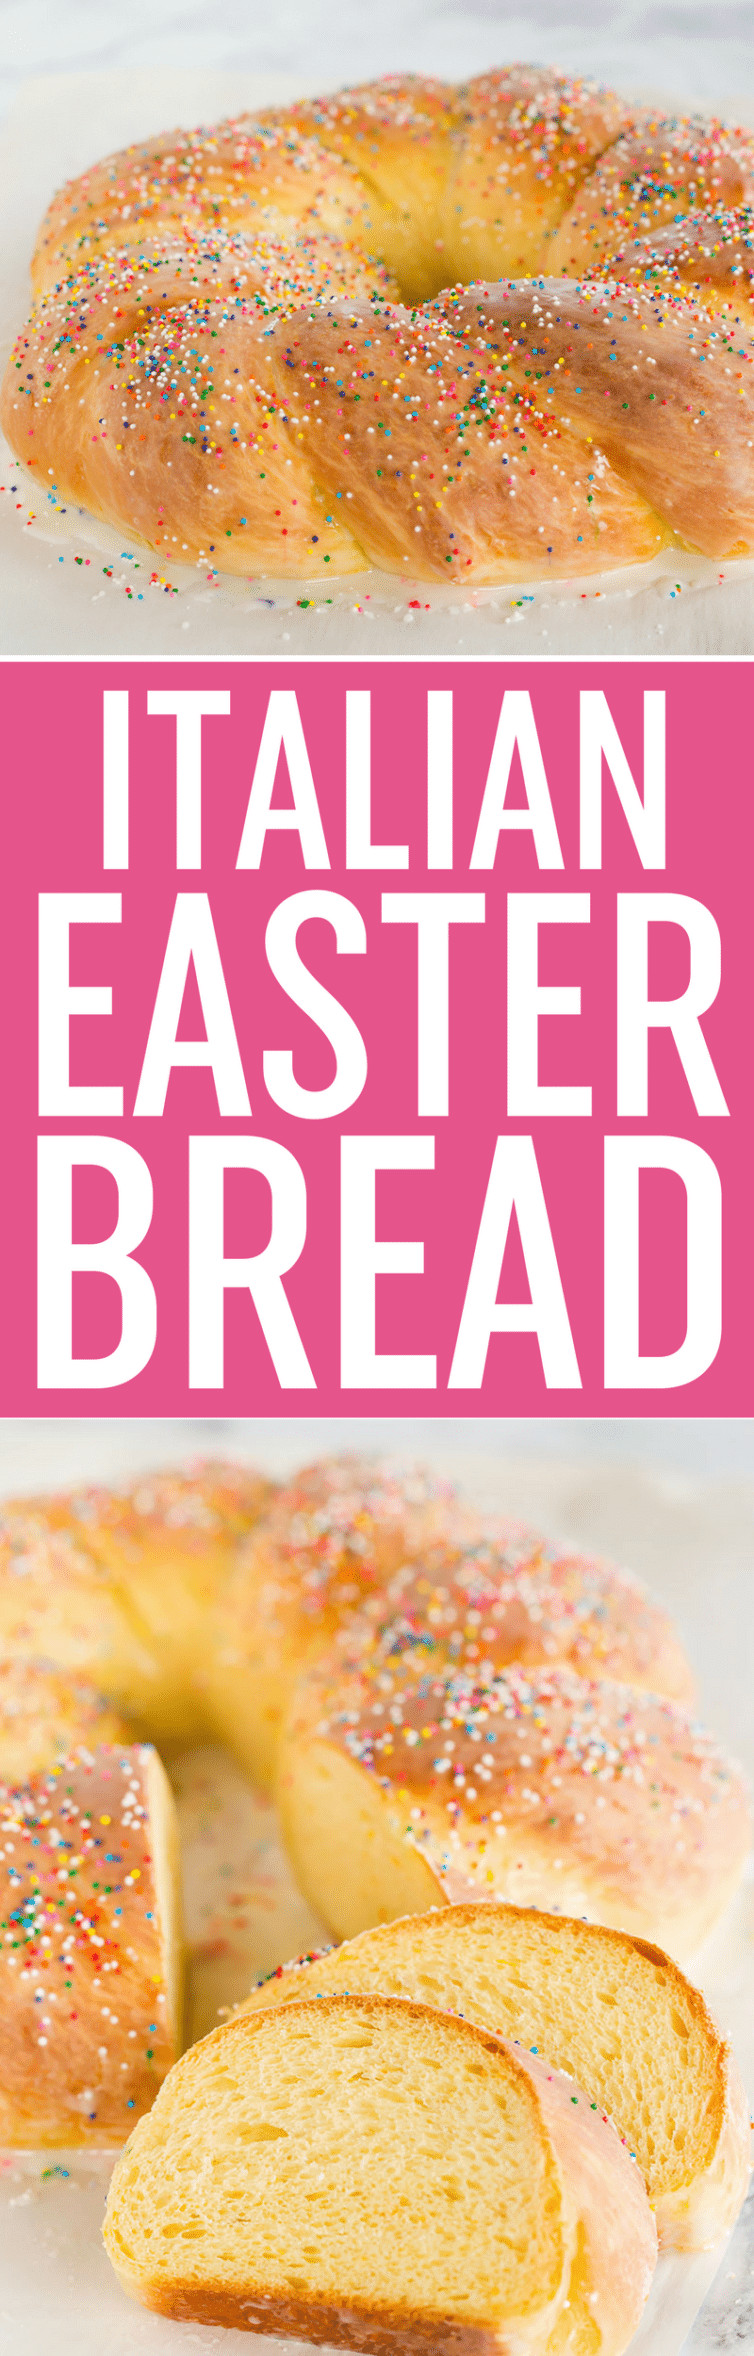 Italian Easter Bread Name  Italian Easter Bread Recipe